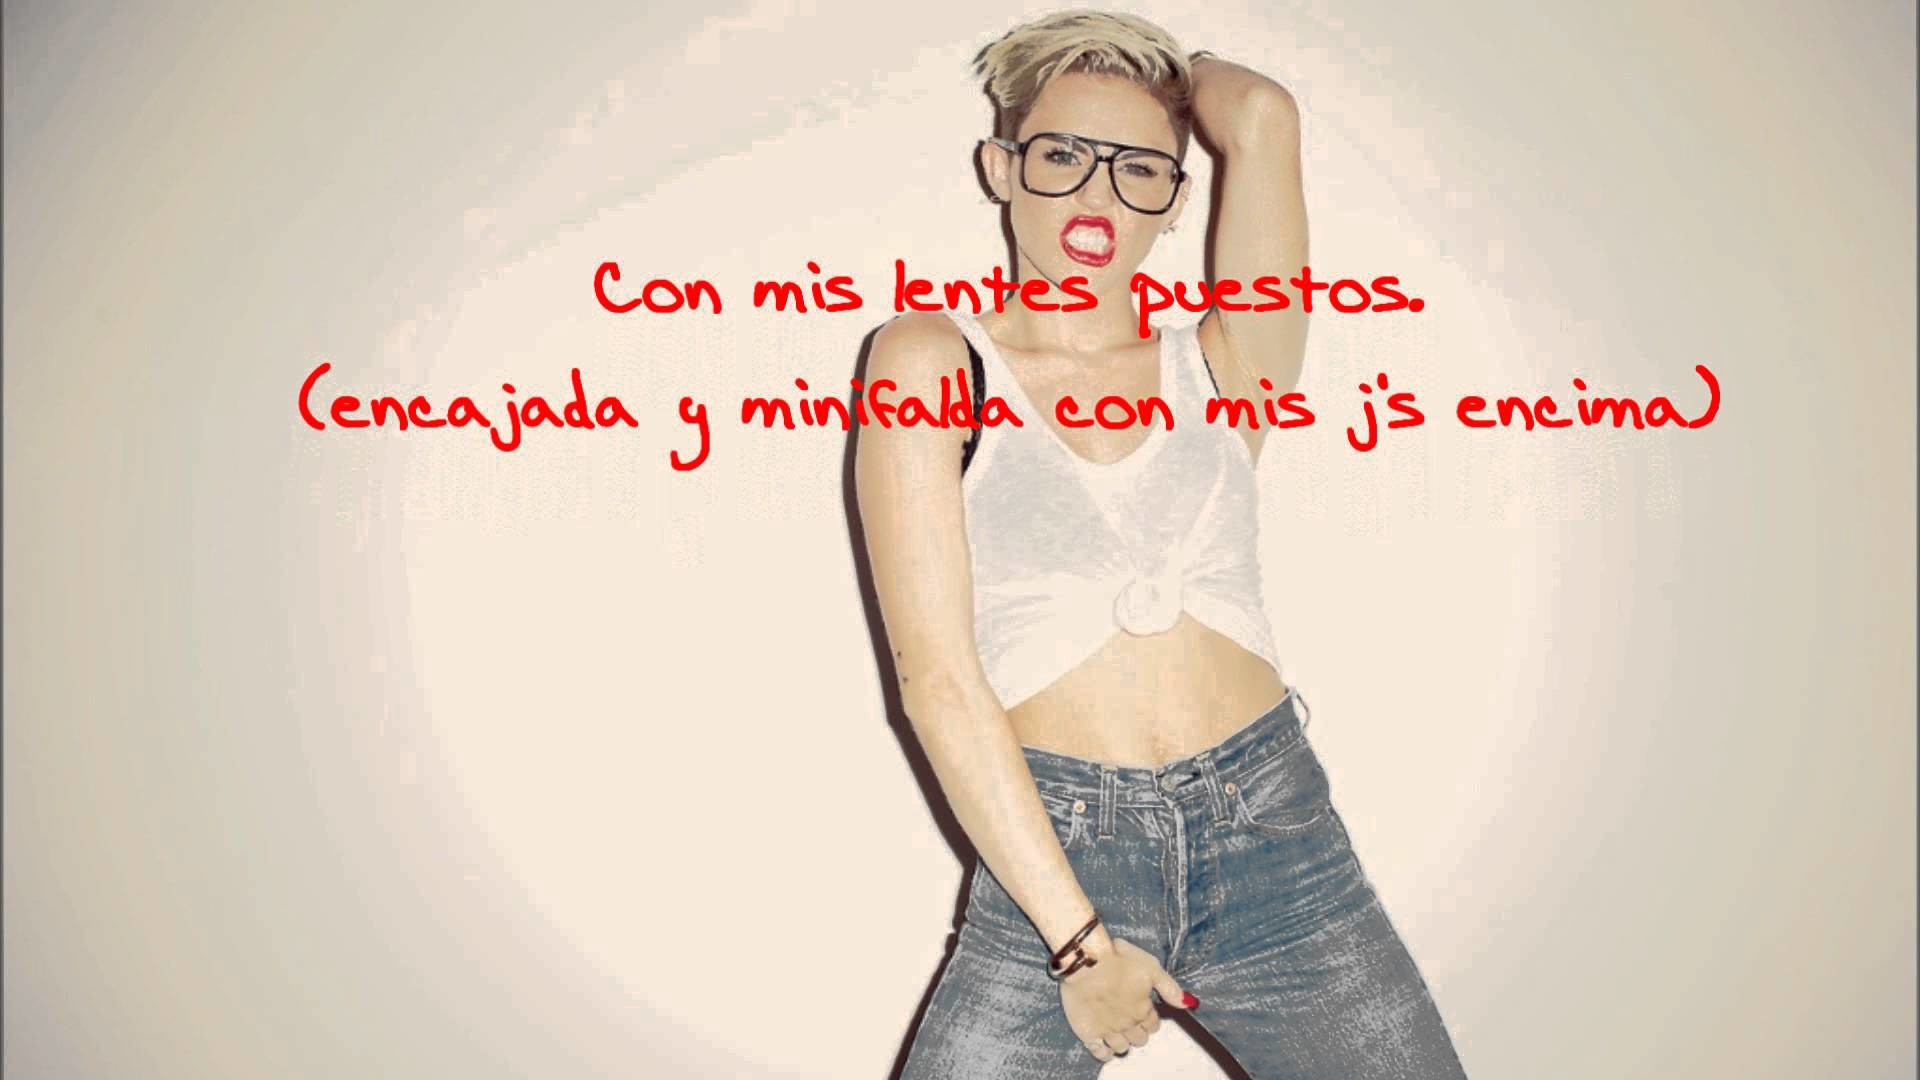 1920x1080 #23 Miley Cyrus ft. Wiz Khalifa , Juicy J and Mike WiLL Made It (Traducción  Al Español)